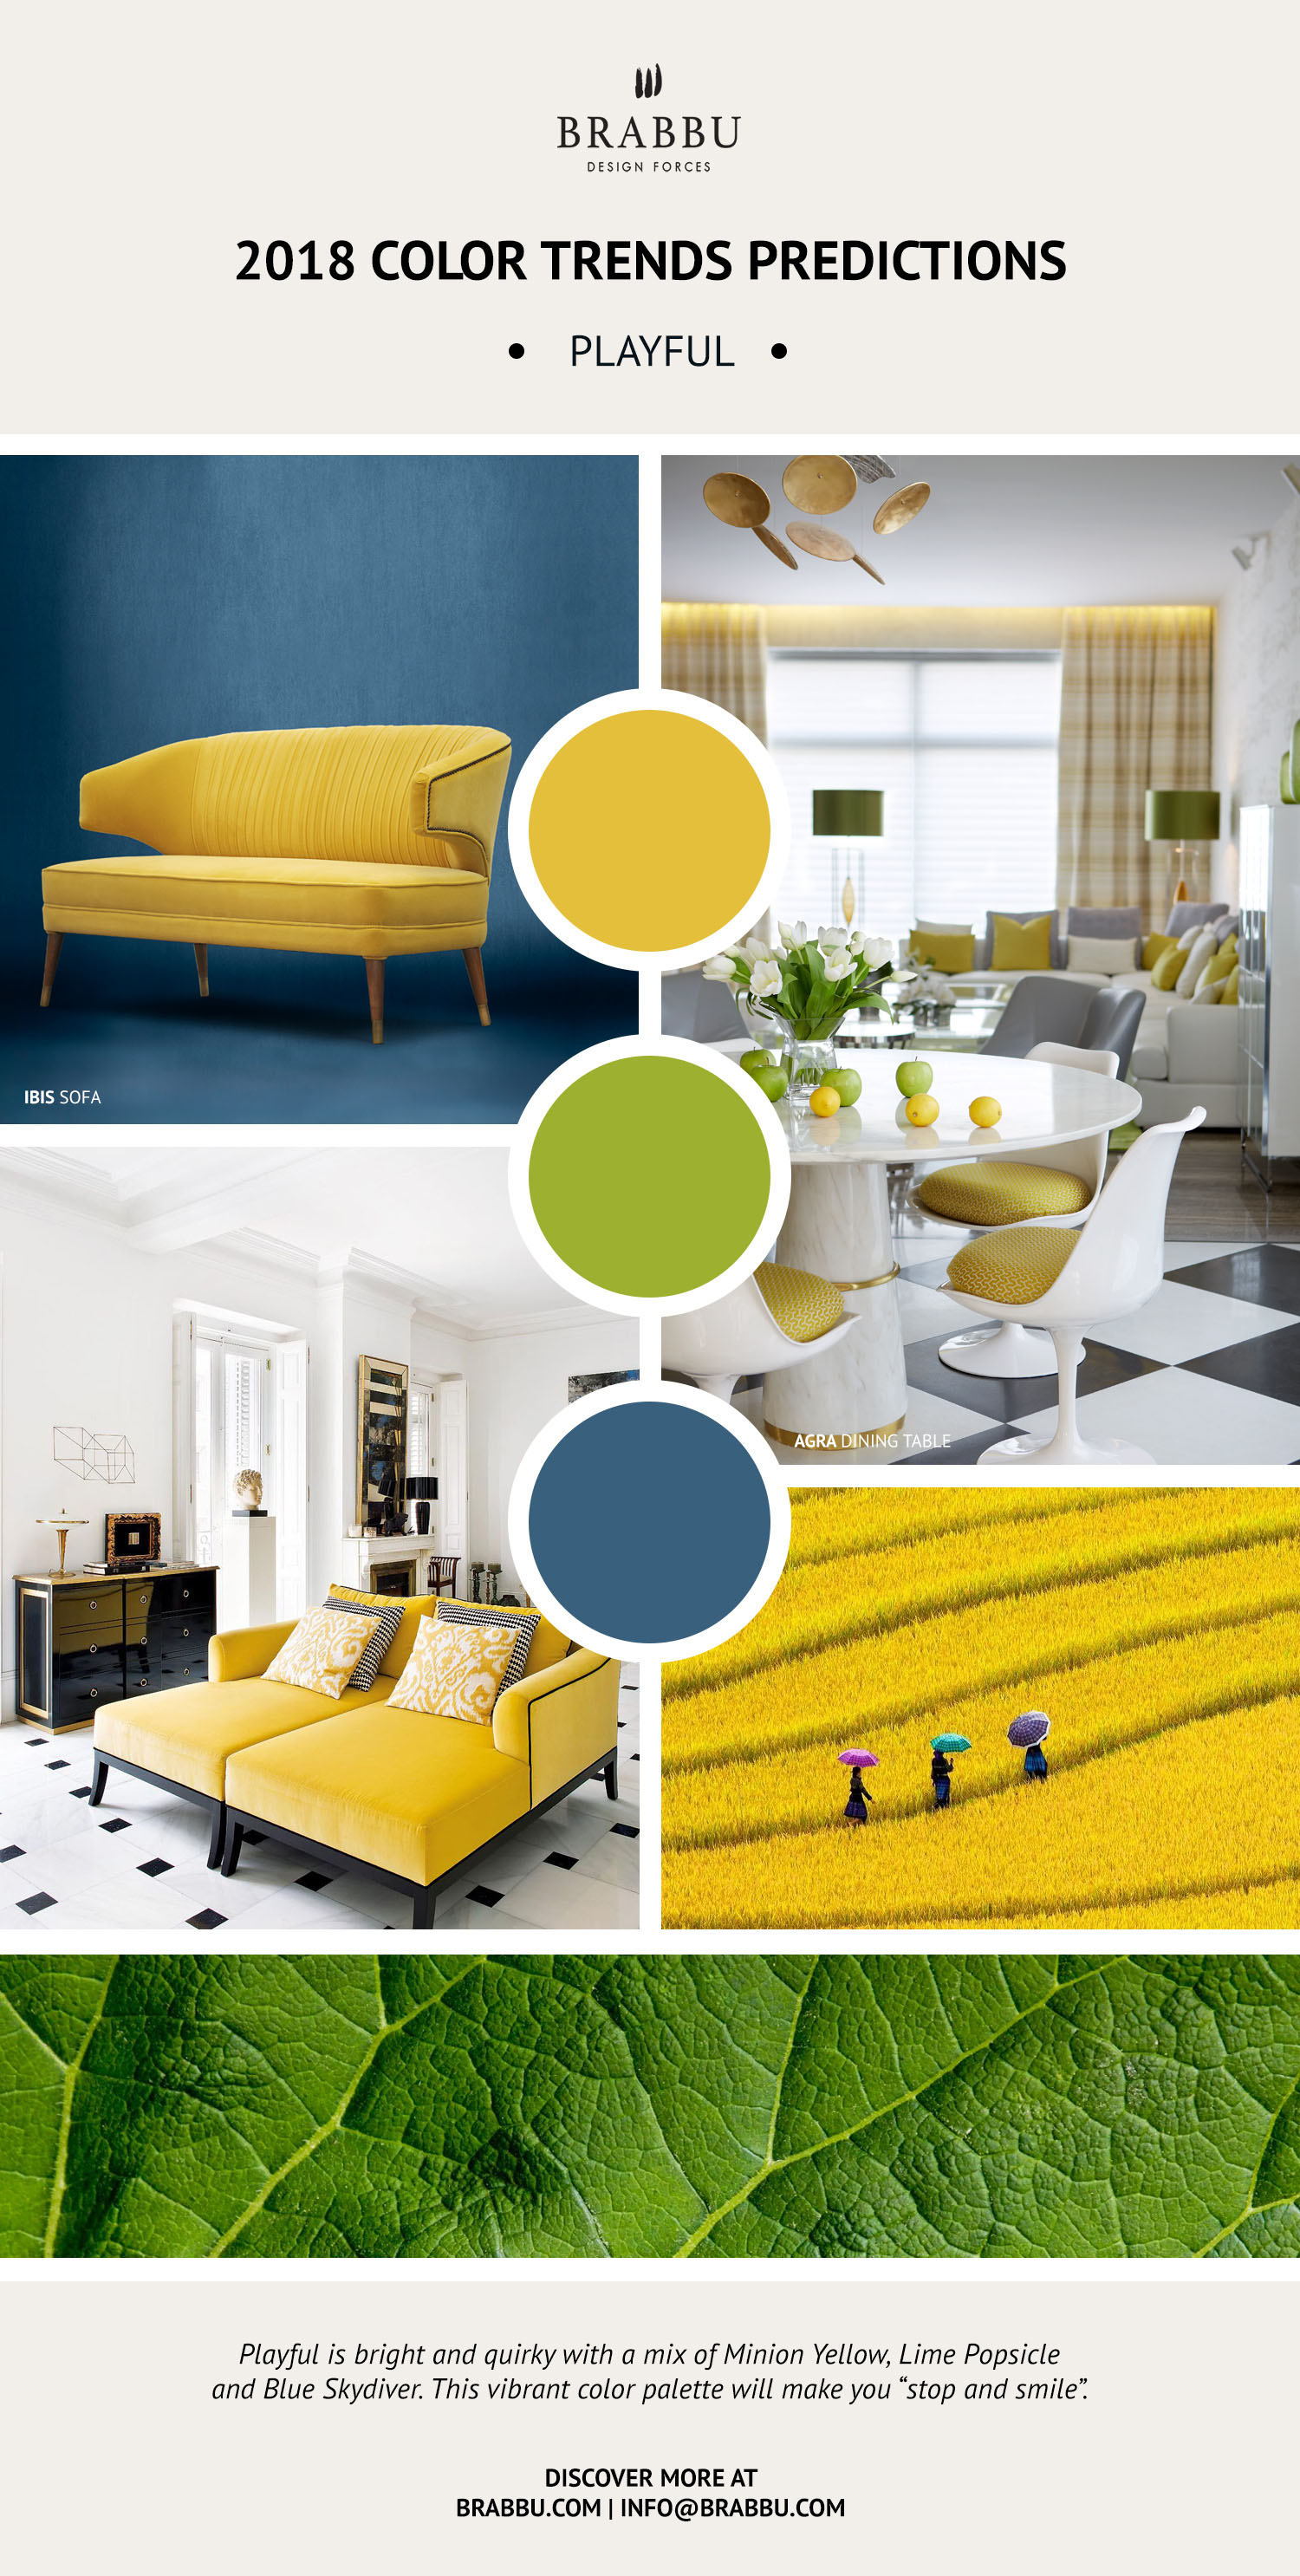 Pantone Color Trend Predictions For 2018 color trend Pantone Color Trend Predictions For 2018 4 1 modern Rugs design Incredible Spring Color Ideas for modern Rugs design 4 1